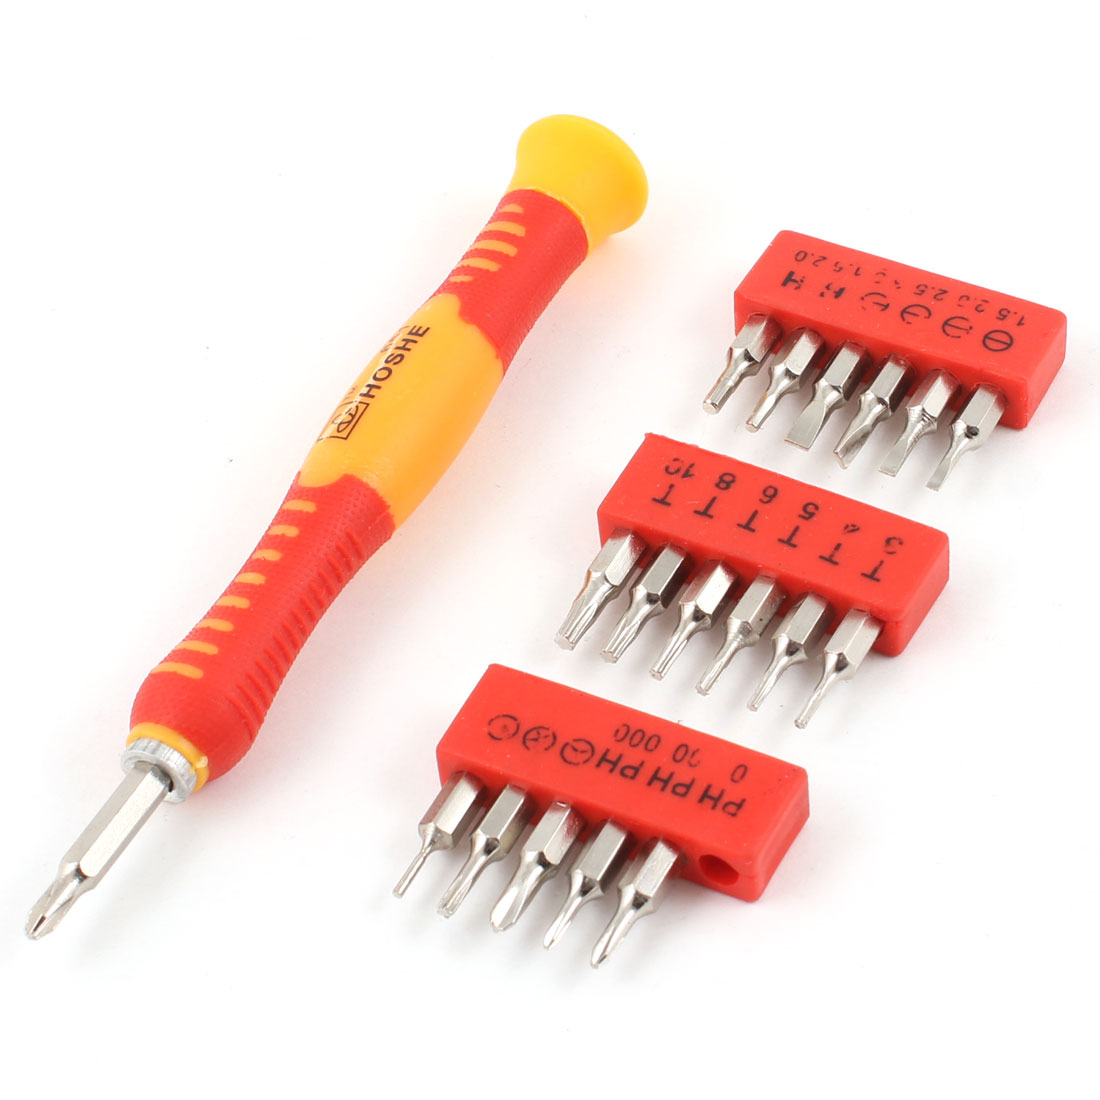 Phillips Slotted Torx Hex Tri-wing Screwdriver Bit Drilling Driving Kits 19 in 1